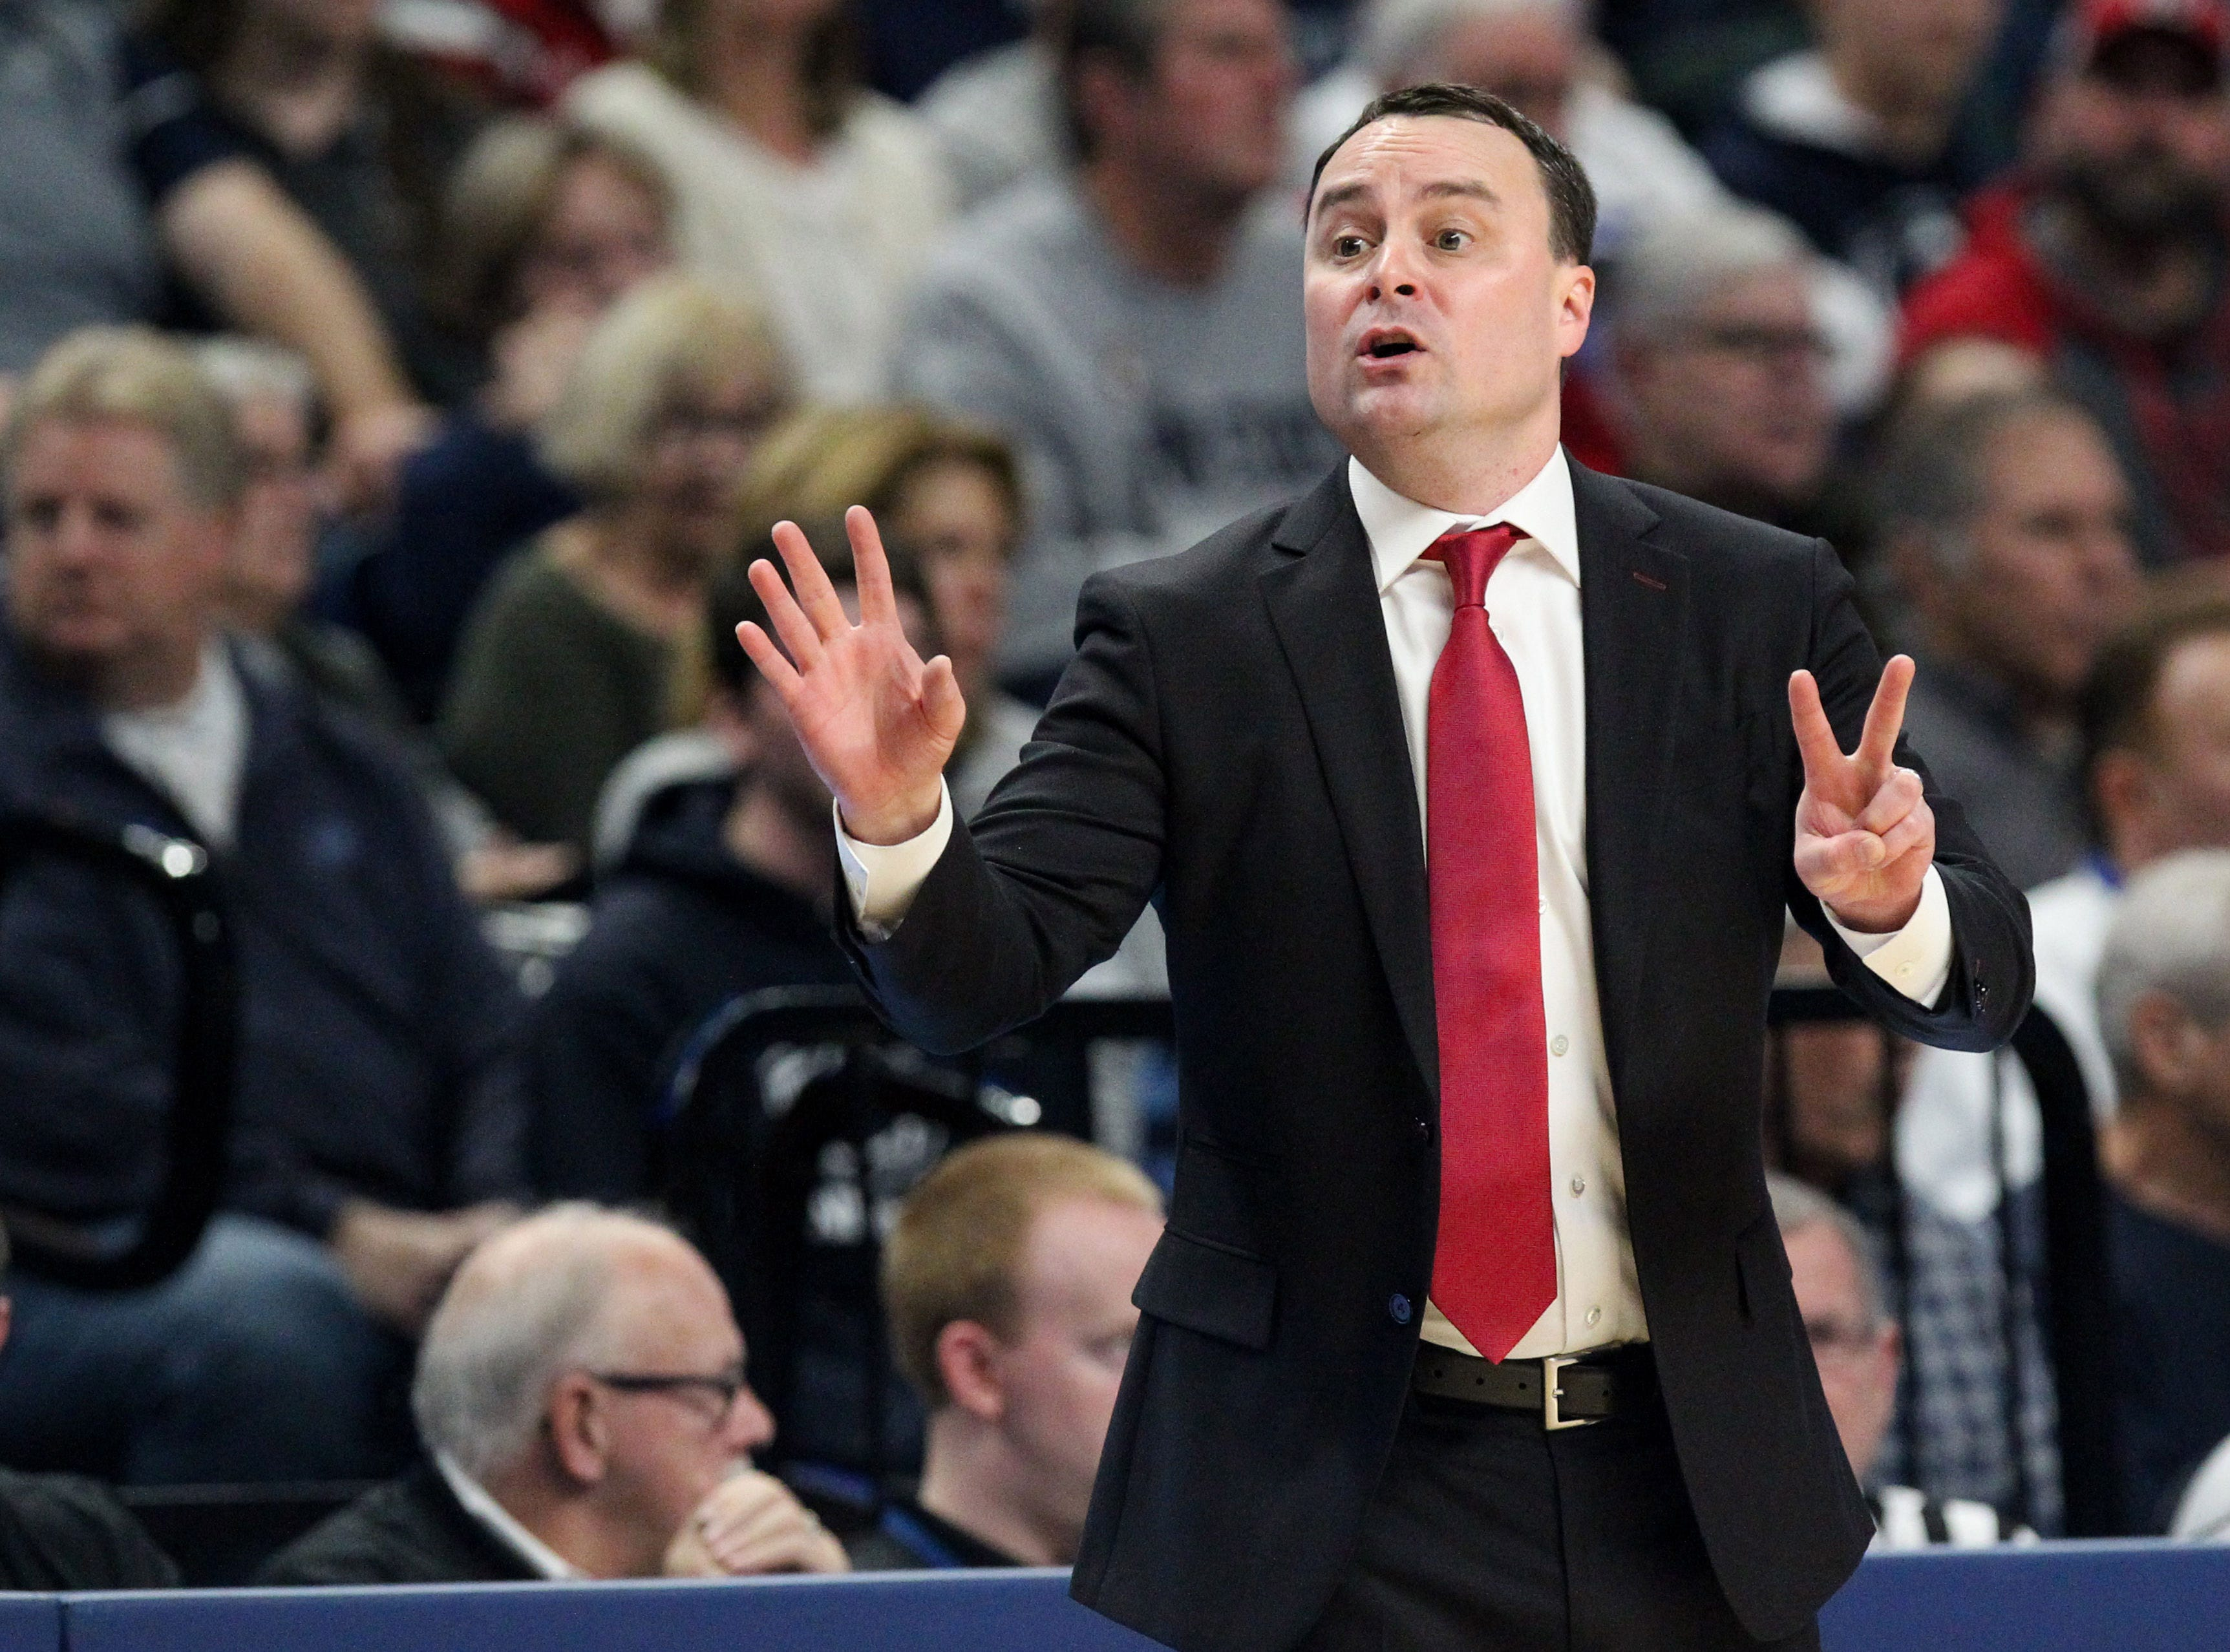 Dec 4, 2018; University Park, PA, USA; Indiana Hoosiers head coach Archie Miller reacts from the bench during the first half against the Penn State Nittany Lions at Bryce Jordan Center. Mandatory Credit: Matthew O'Haren-USA TODAY Sports